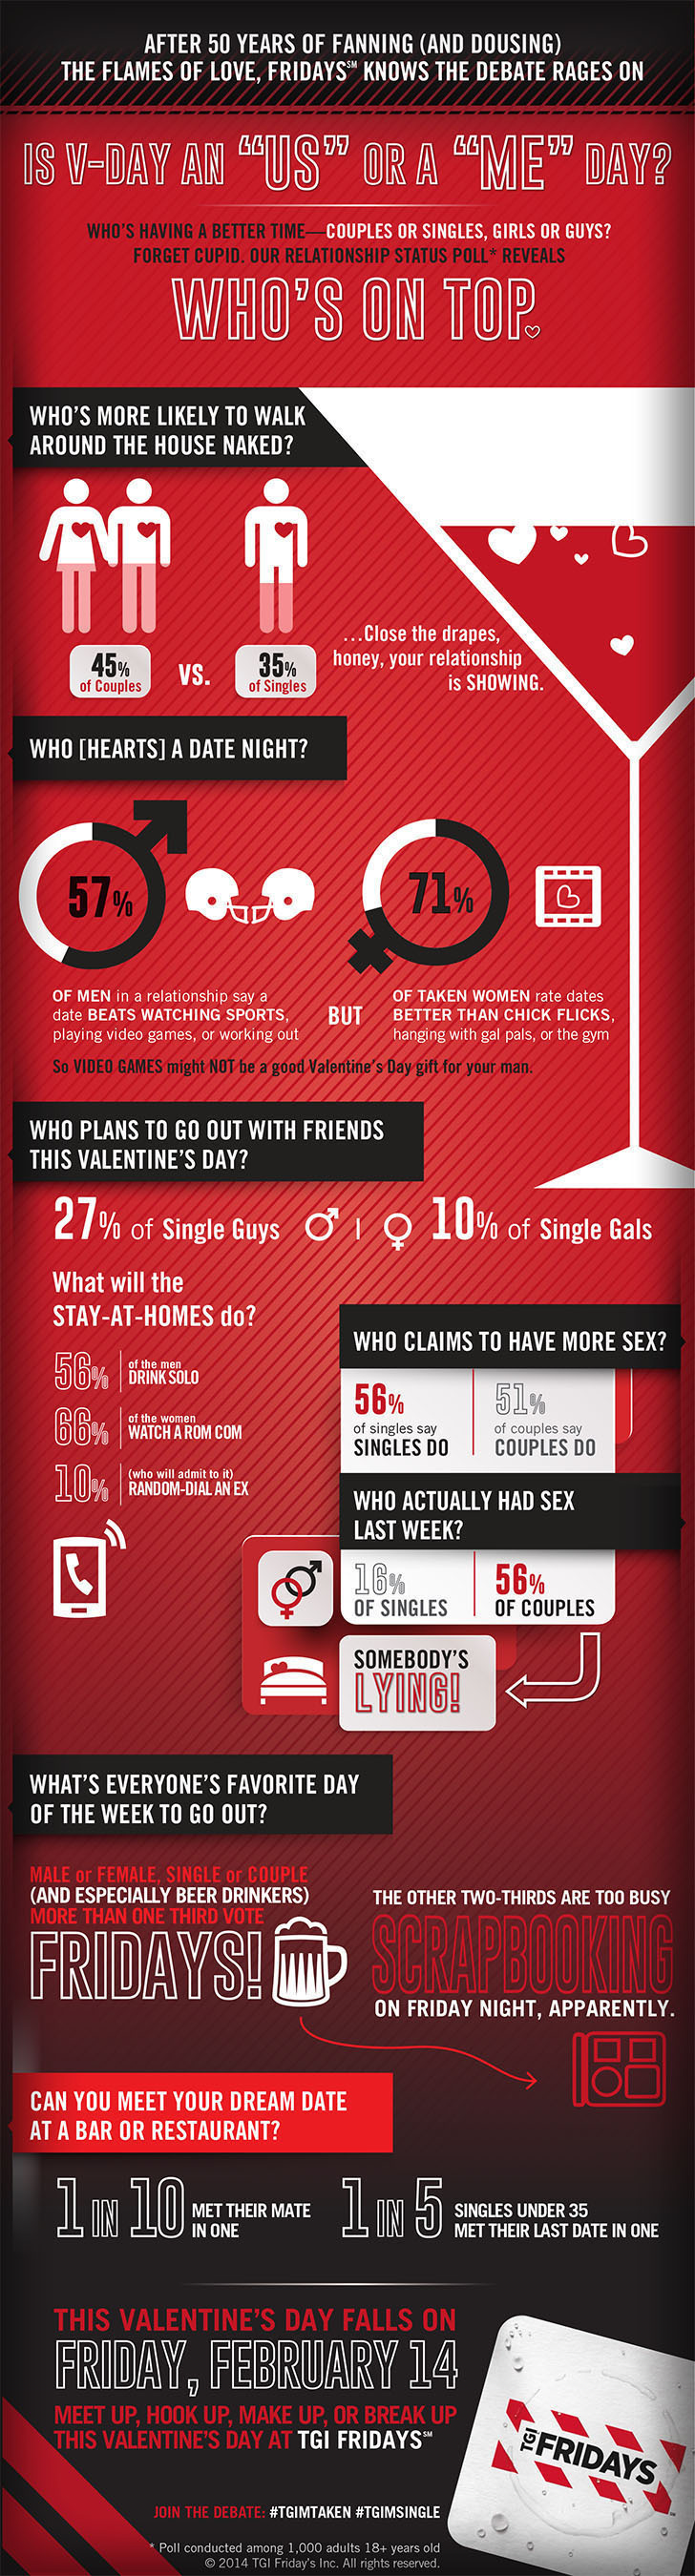 TGI Fridays(TM) Uncovers Truths about the Couples vs. Singles Debate, Gets to the Bottom of Who's Having ...